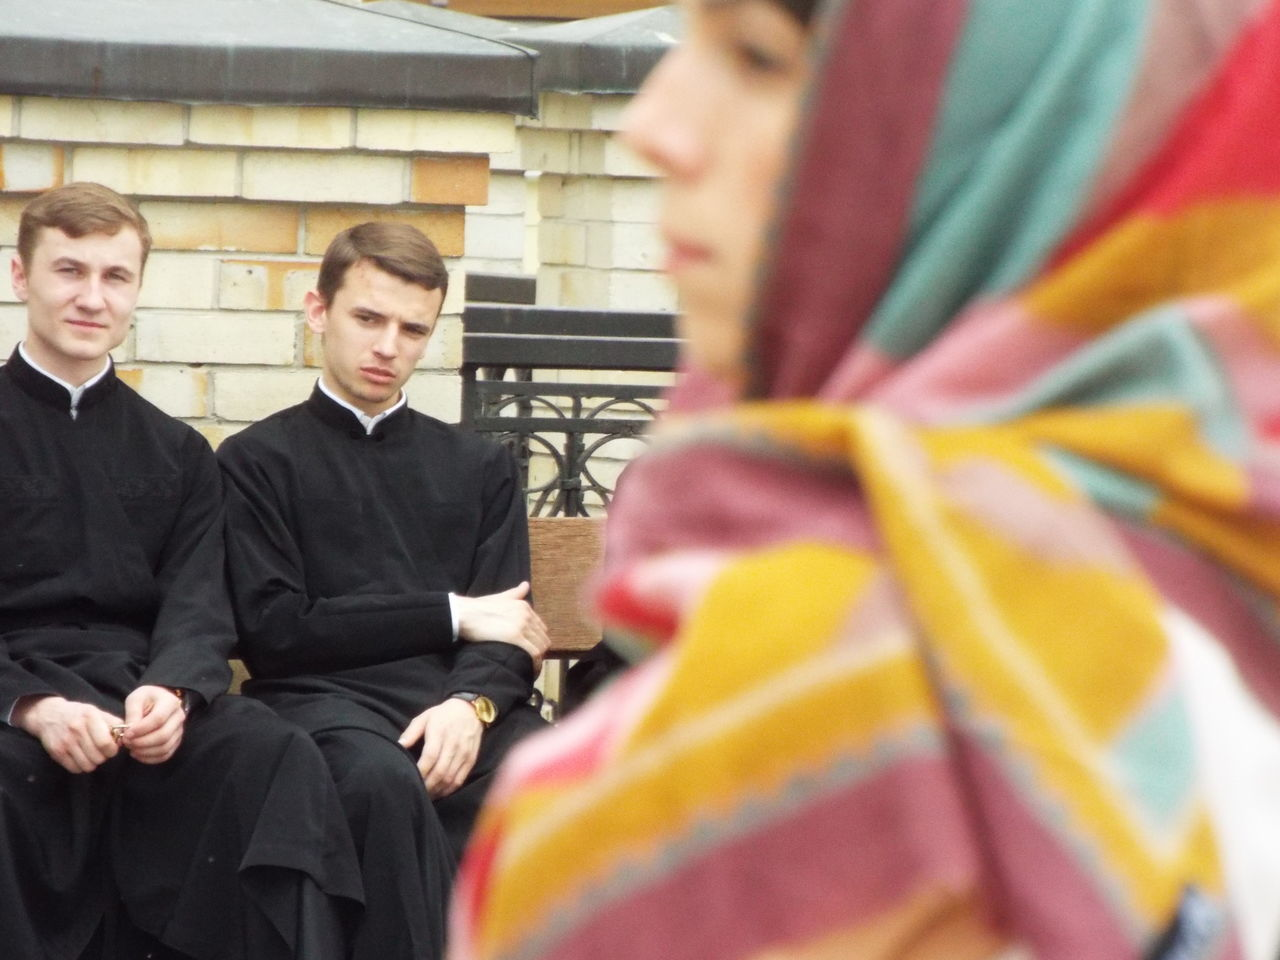 Practicing vicars sat on a bench in Kiev, Ukraine. A women came into shop, as I was capturing the image. Day Eastern Europe Kiev Kiev Ukraine Photojournalism Religion Sat Down The Photojournalist - 2016 EyeEm Awards The Street Photographer - 2016 EyeEm Awards Ukraine